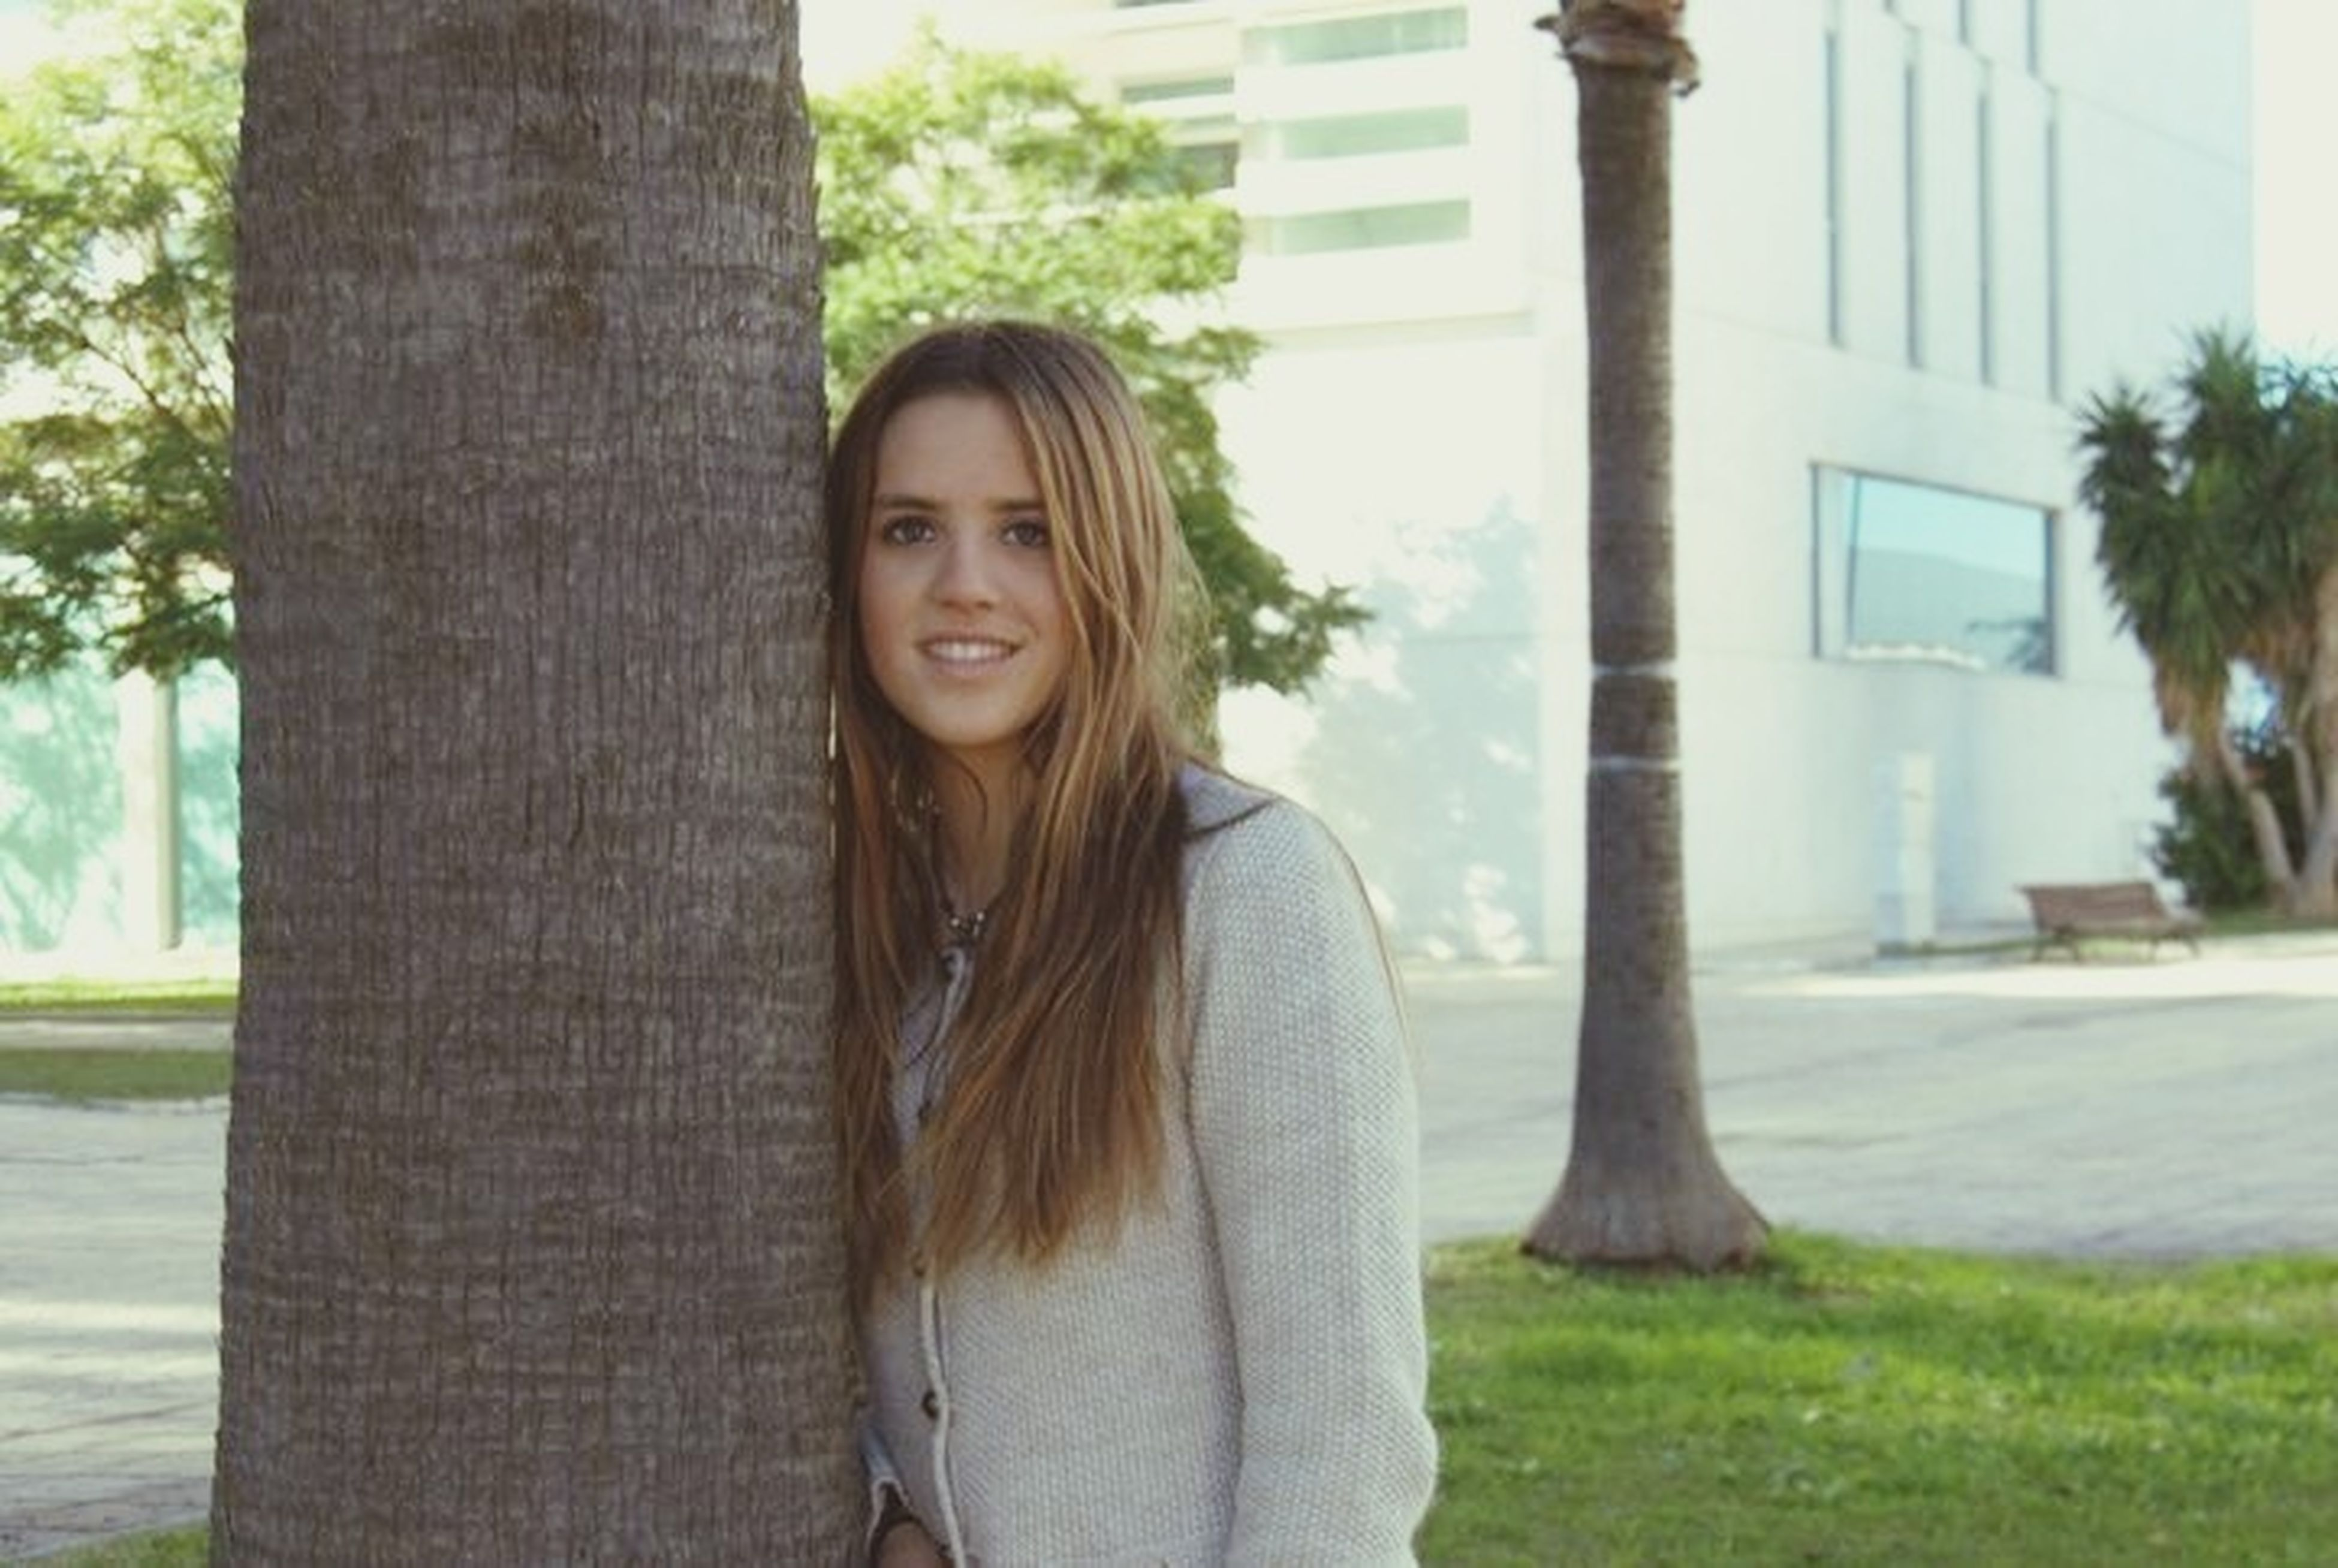 young adult, young women, long hair, person, tree, lifestyles, front view, looking at camera, portrait, standing, leisure activity, casual clothing, medium-length hair, day, smiling, tree trunk, window